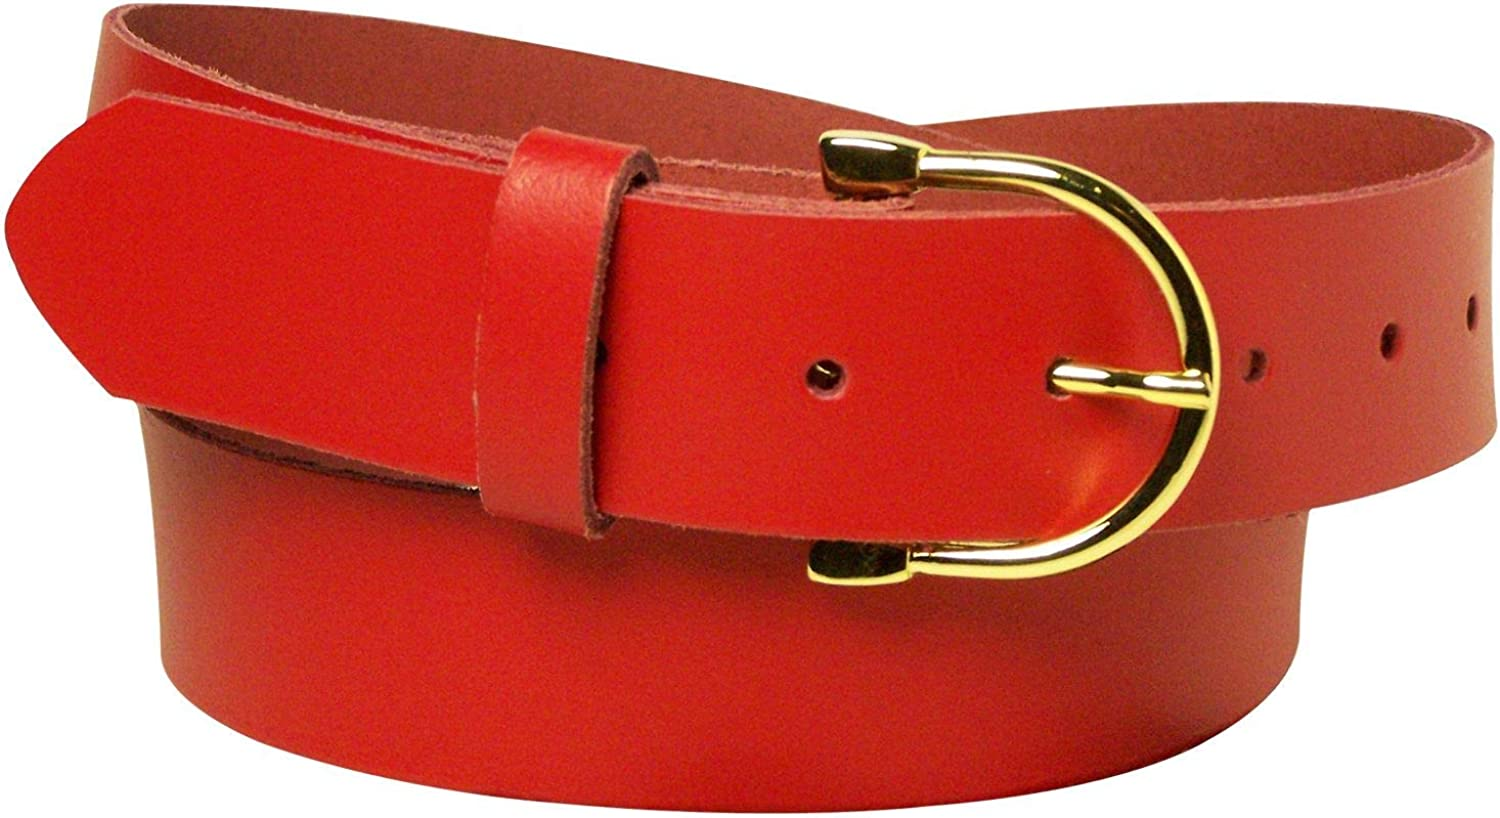 , Size waist size 37.5 IN L EU 95 cm, color Red